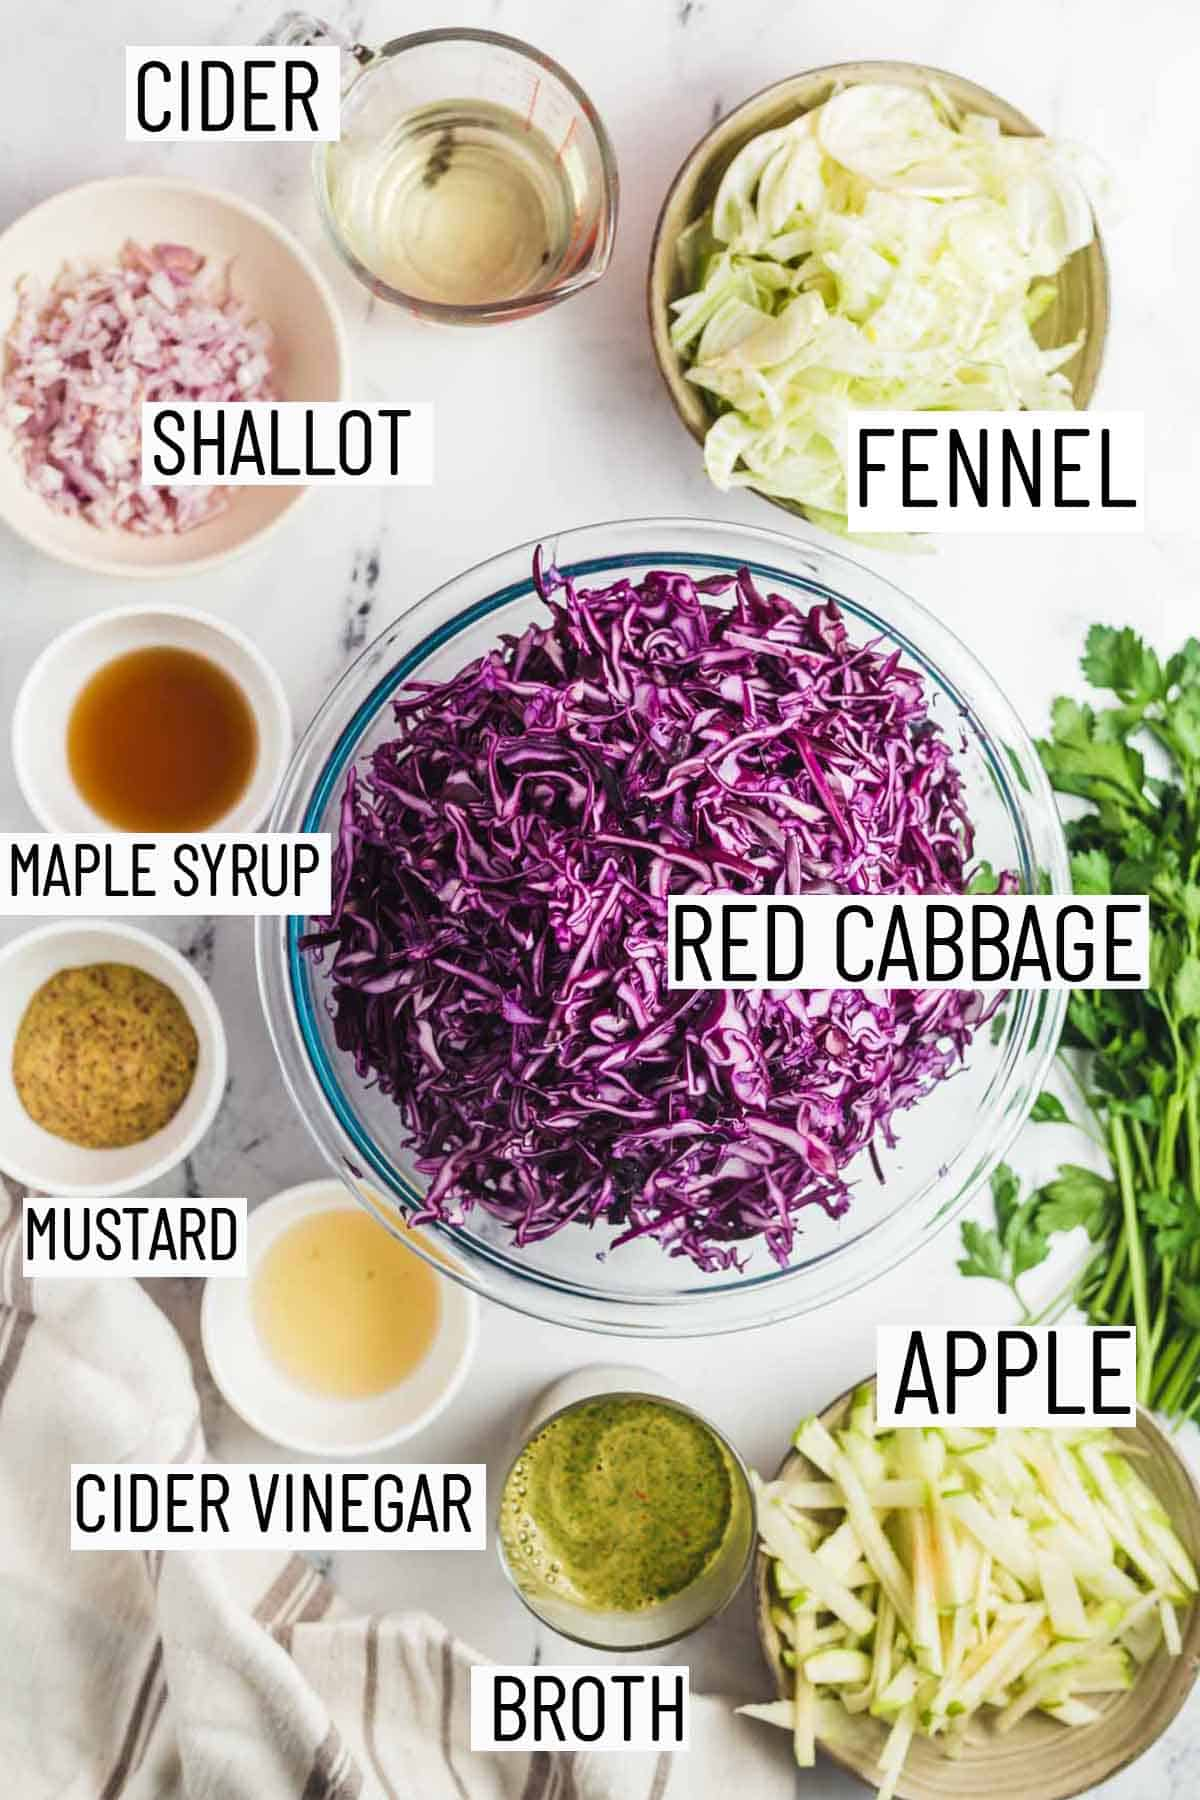 Flat lay image of recipe ingredients for recipe including fennel, cider, shallot, maple syrup, mustard, cider vinegar, broth, apple, and red cabbage.